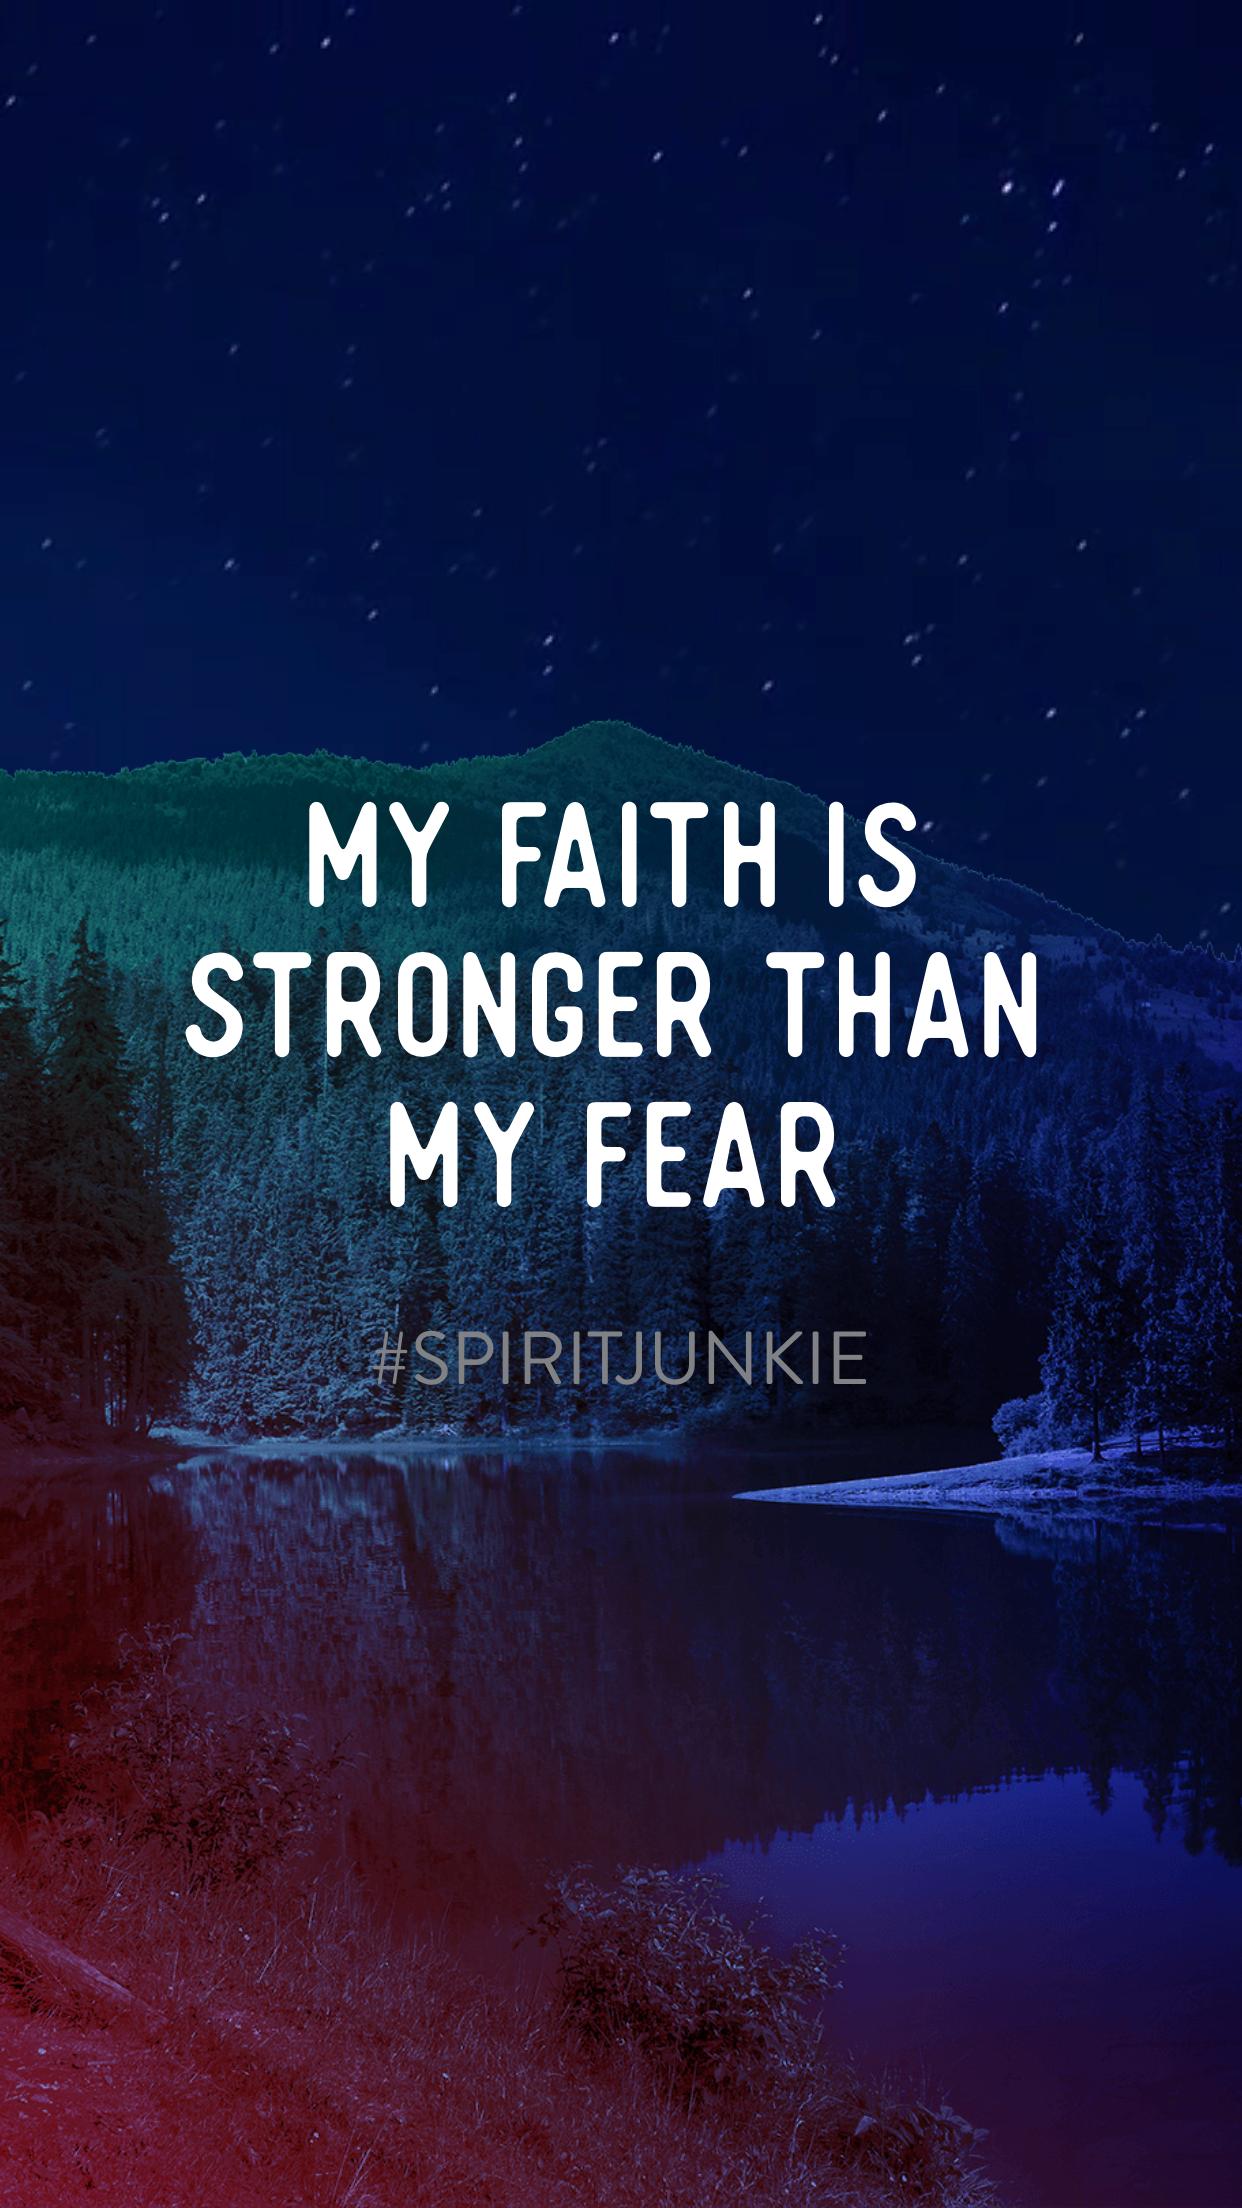 my faith is stronger than my fear gabby bernstein spirit junkie app|feeling good